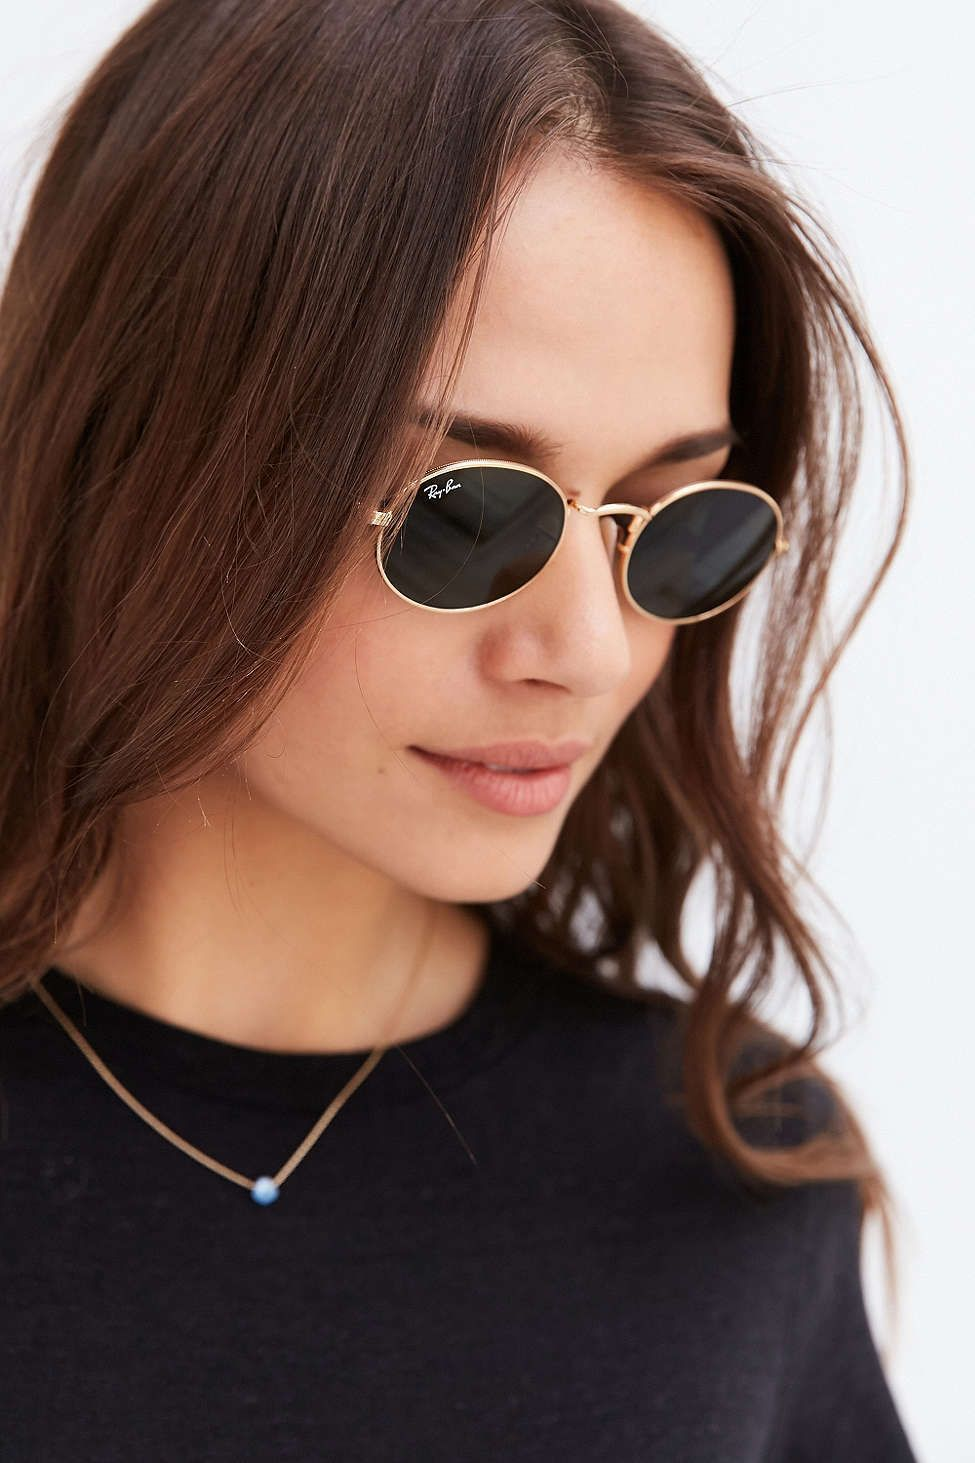 c0df9e7ff48689 Ray Ban Oval Icon   Ray Bans   Pinterest   Ray ban sunglasses ...